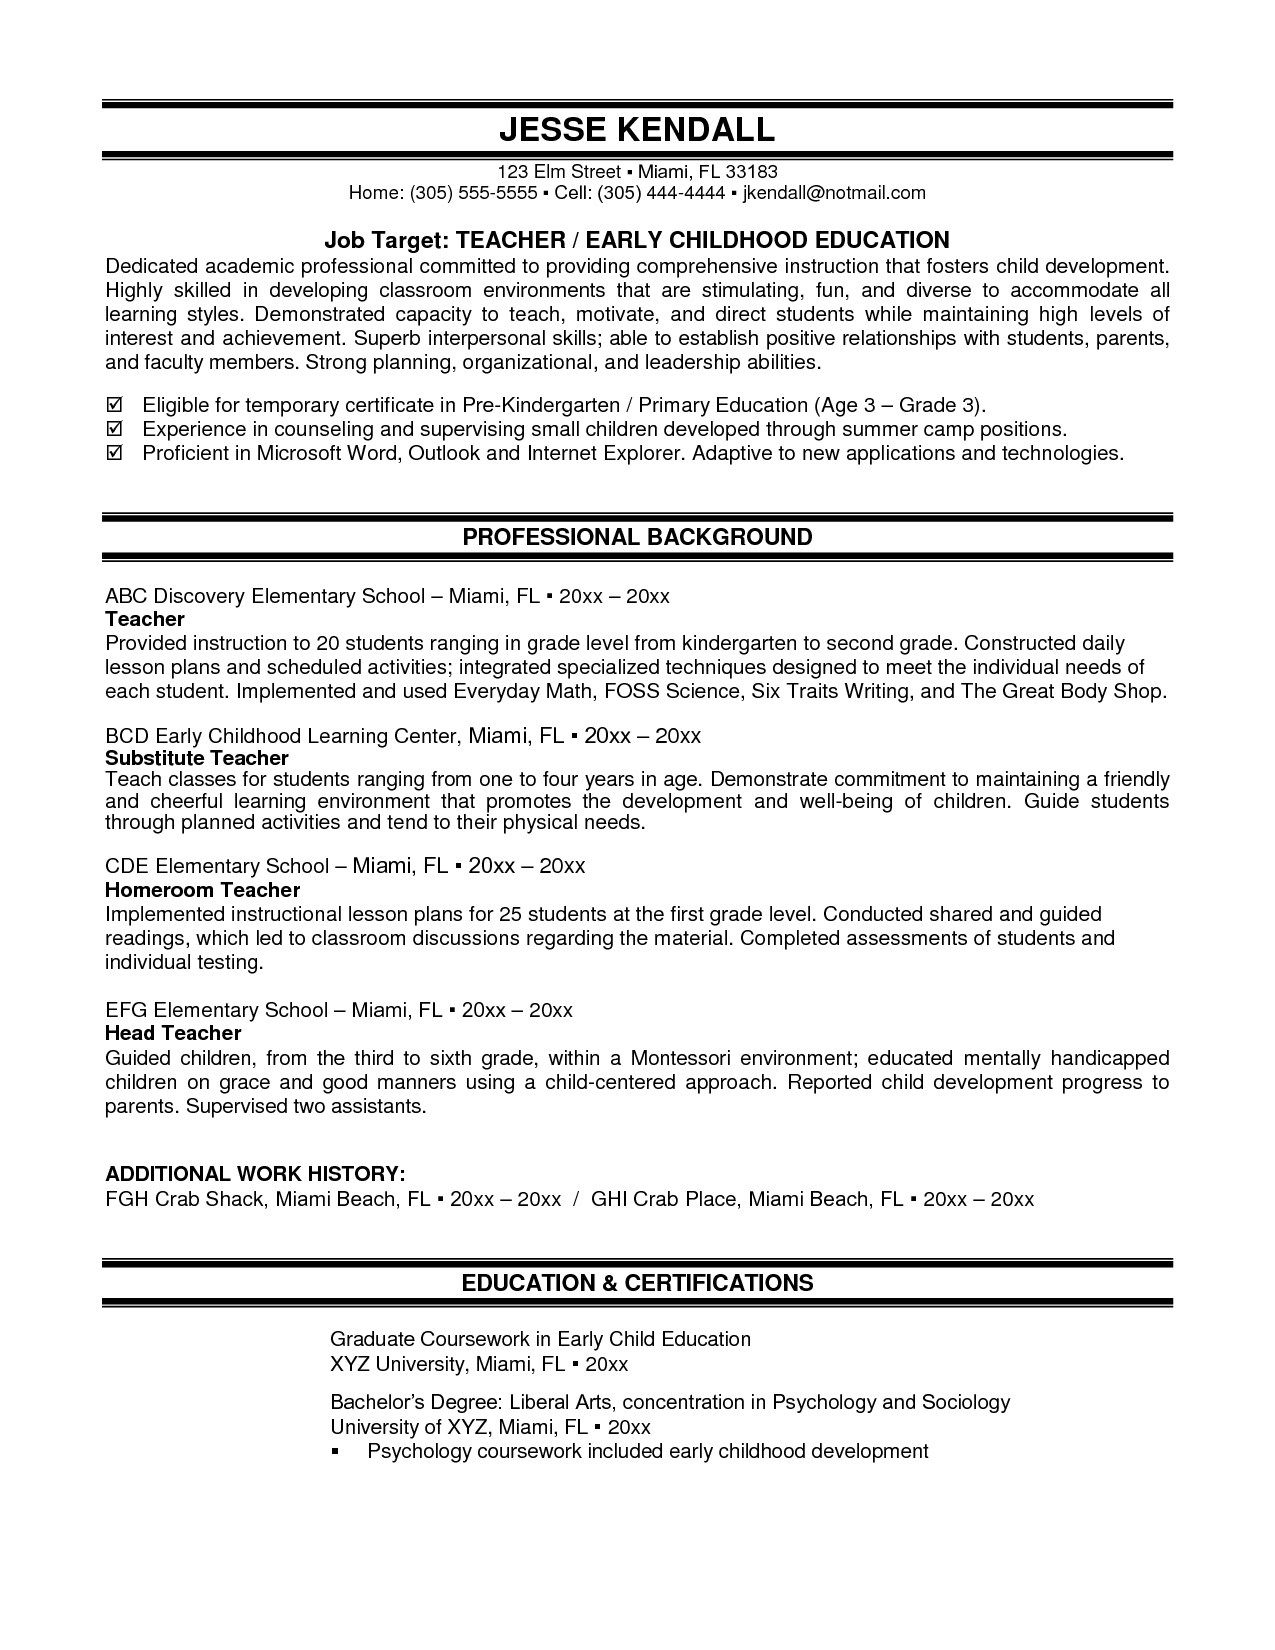 Welder Resume Examples Private Music Teacher Resume Sample  Httpersumeprivate